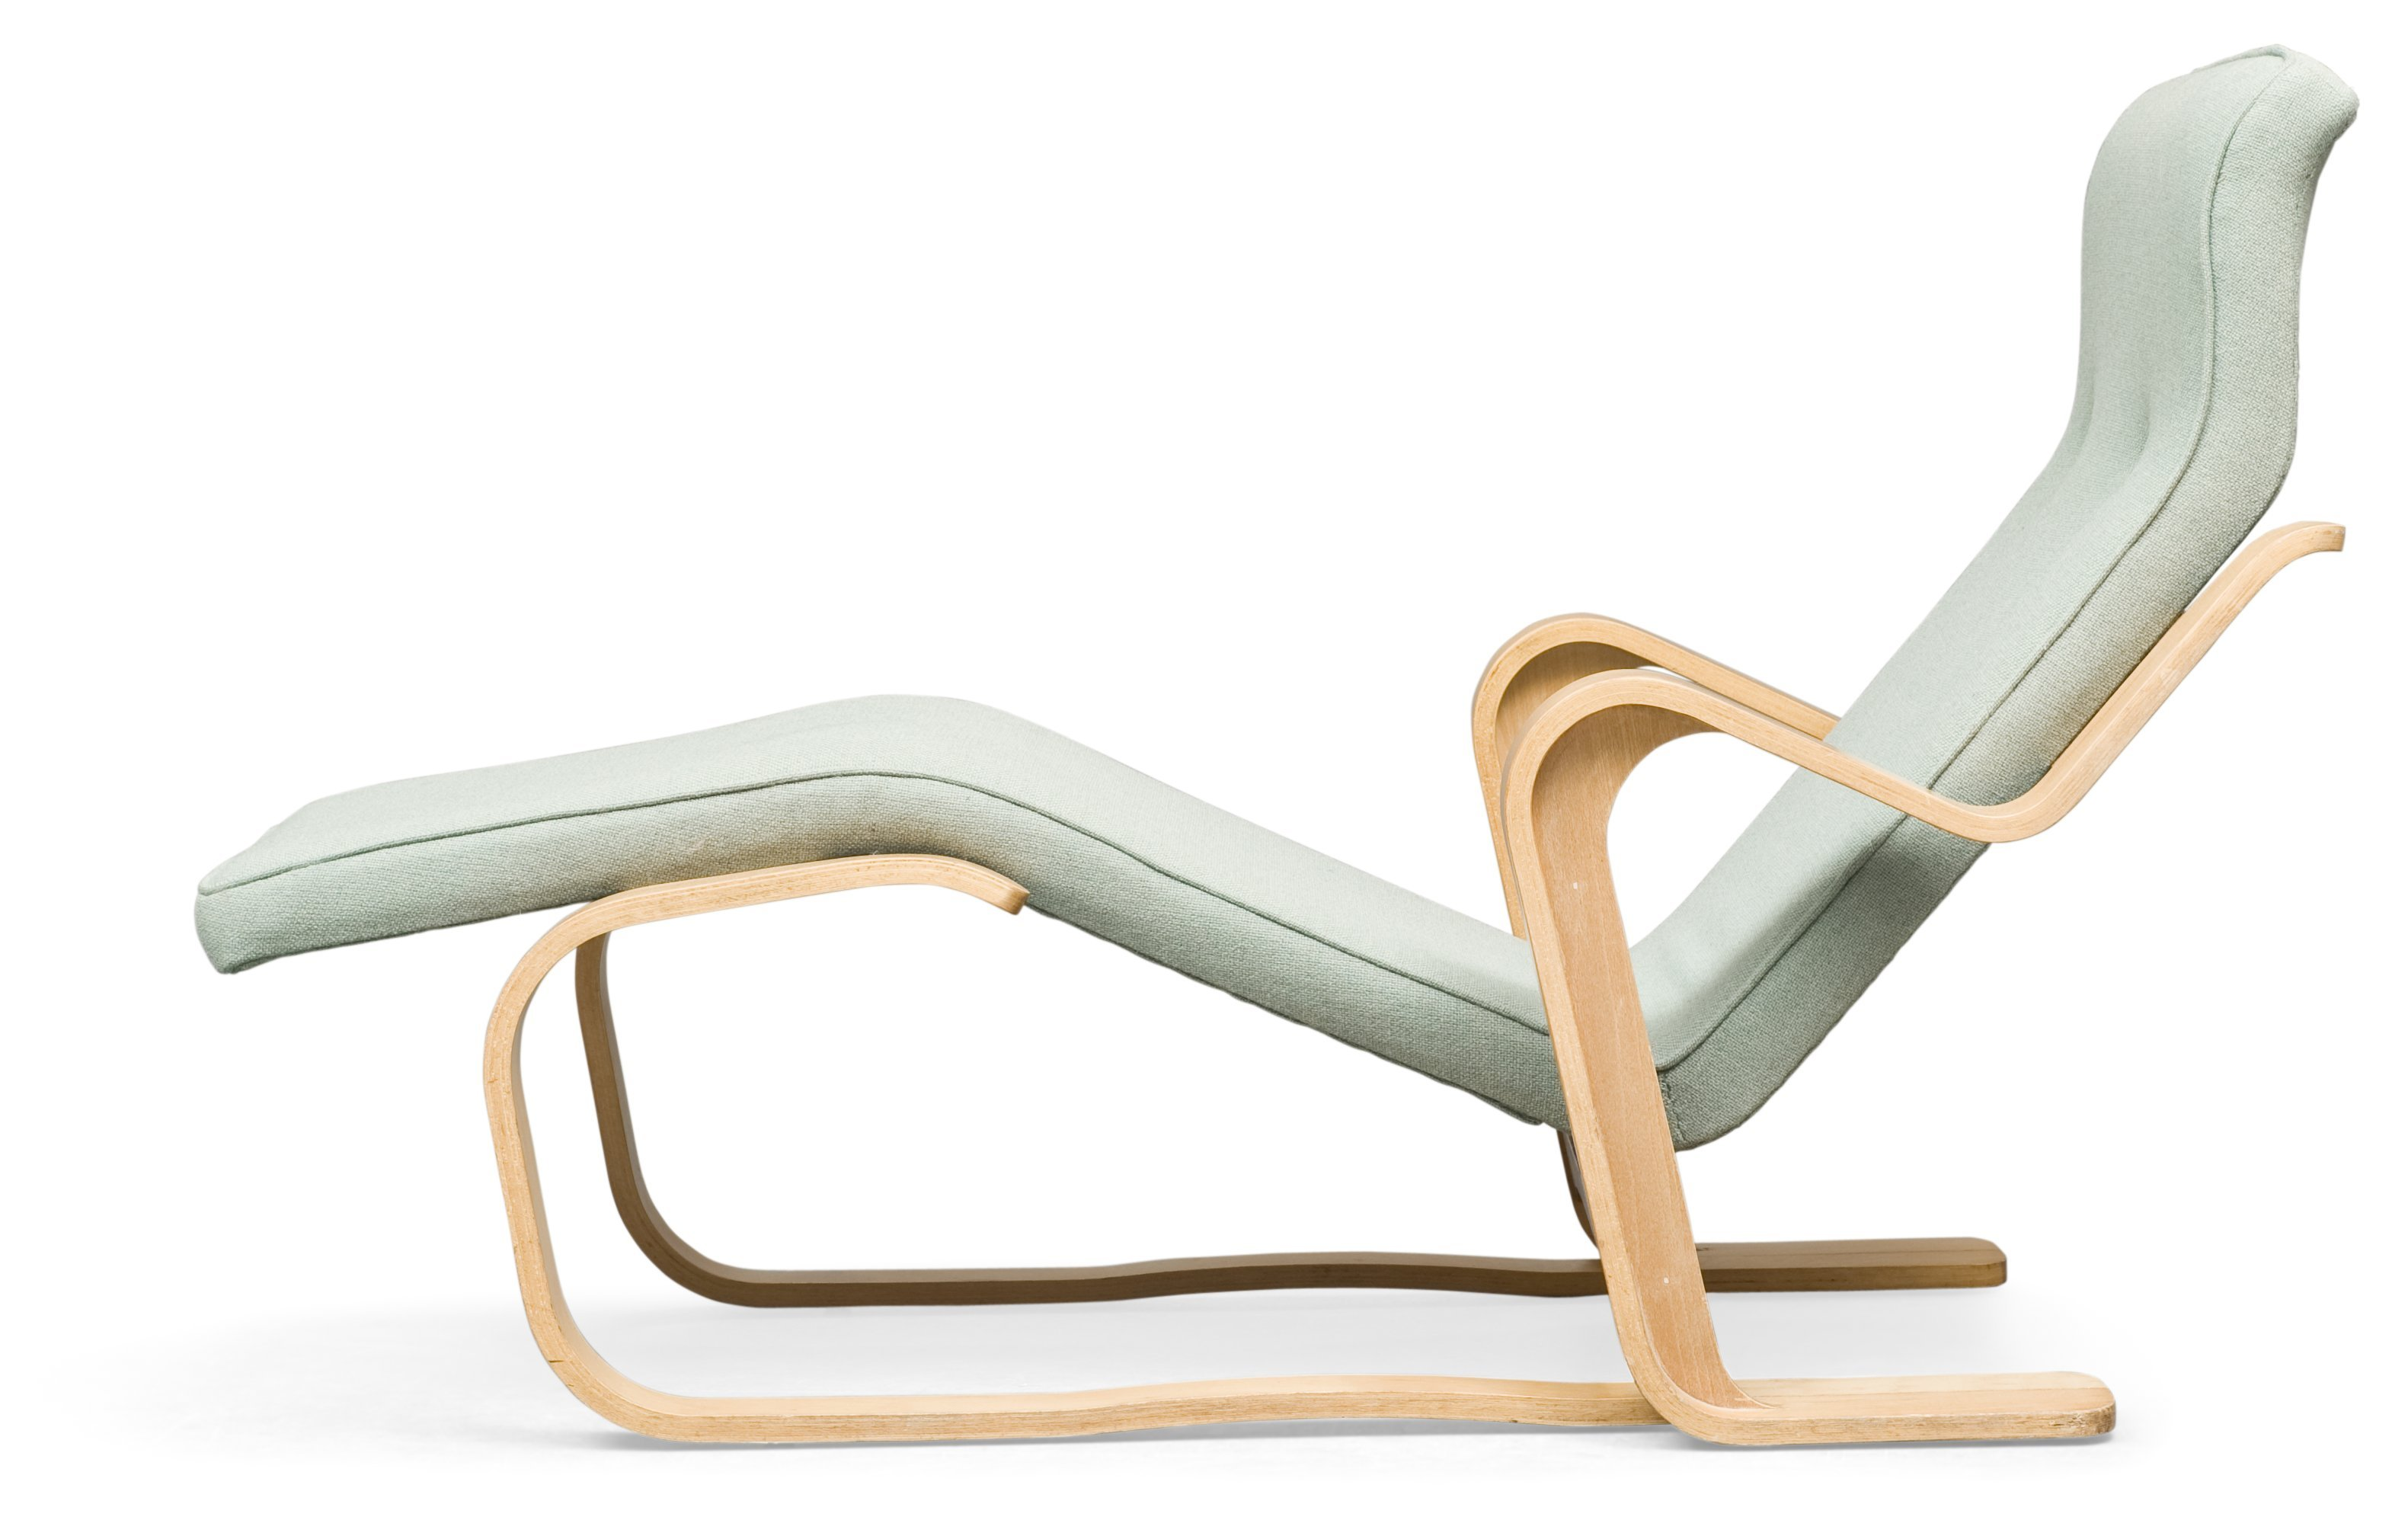 A Marcel Breuer Lounge Chair for Isokon England Laminated beech